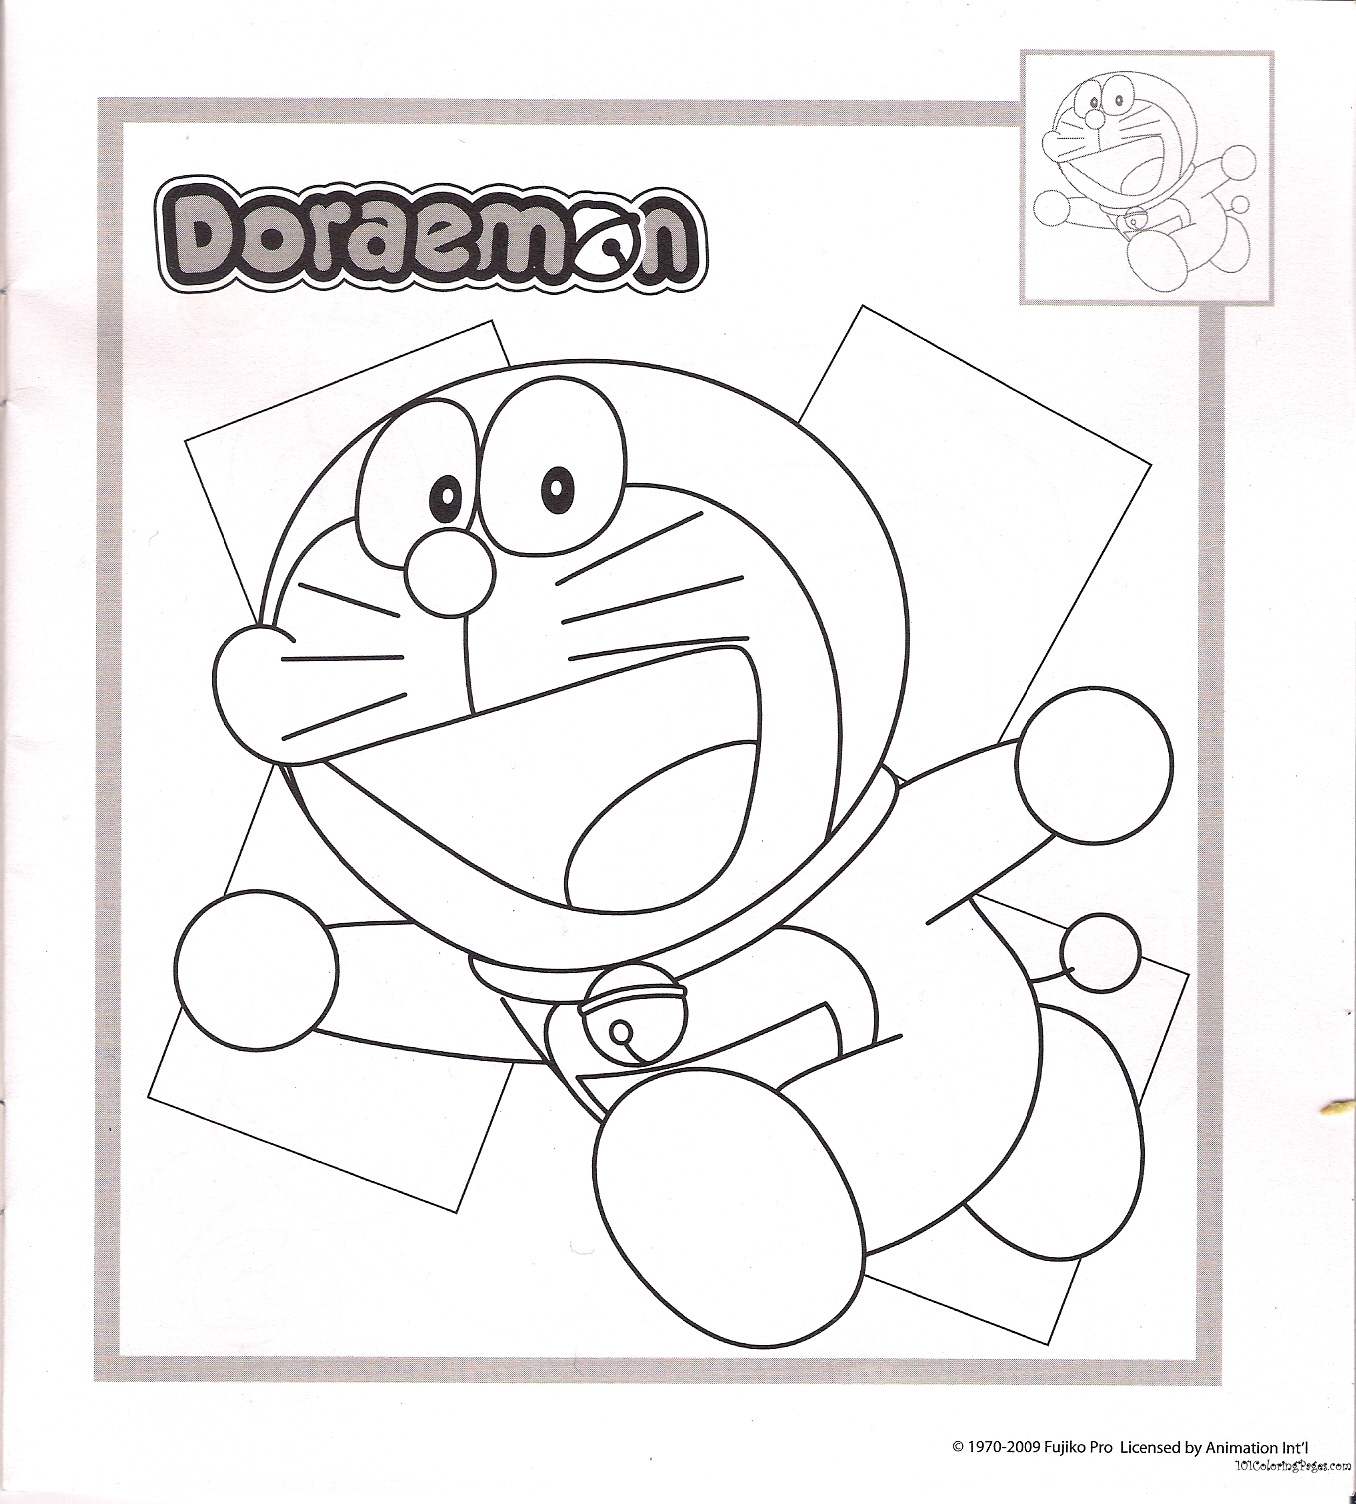 Doraemon colouring games online play - Doraemon Coloring Page For Kids While Doraemon In Hurry